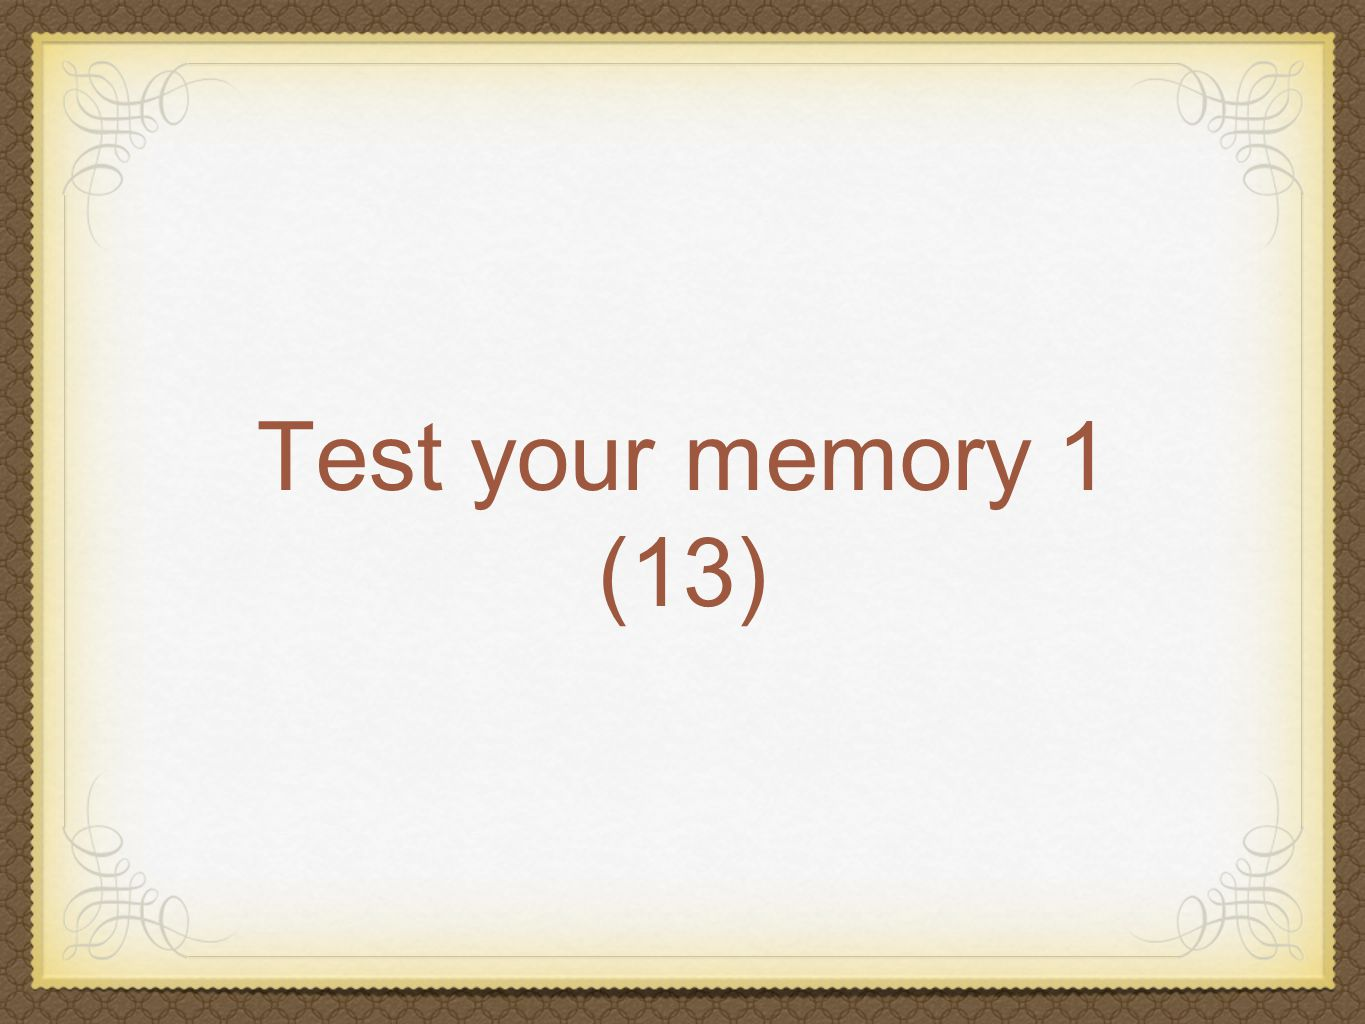 Test your memory 1 (13)